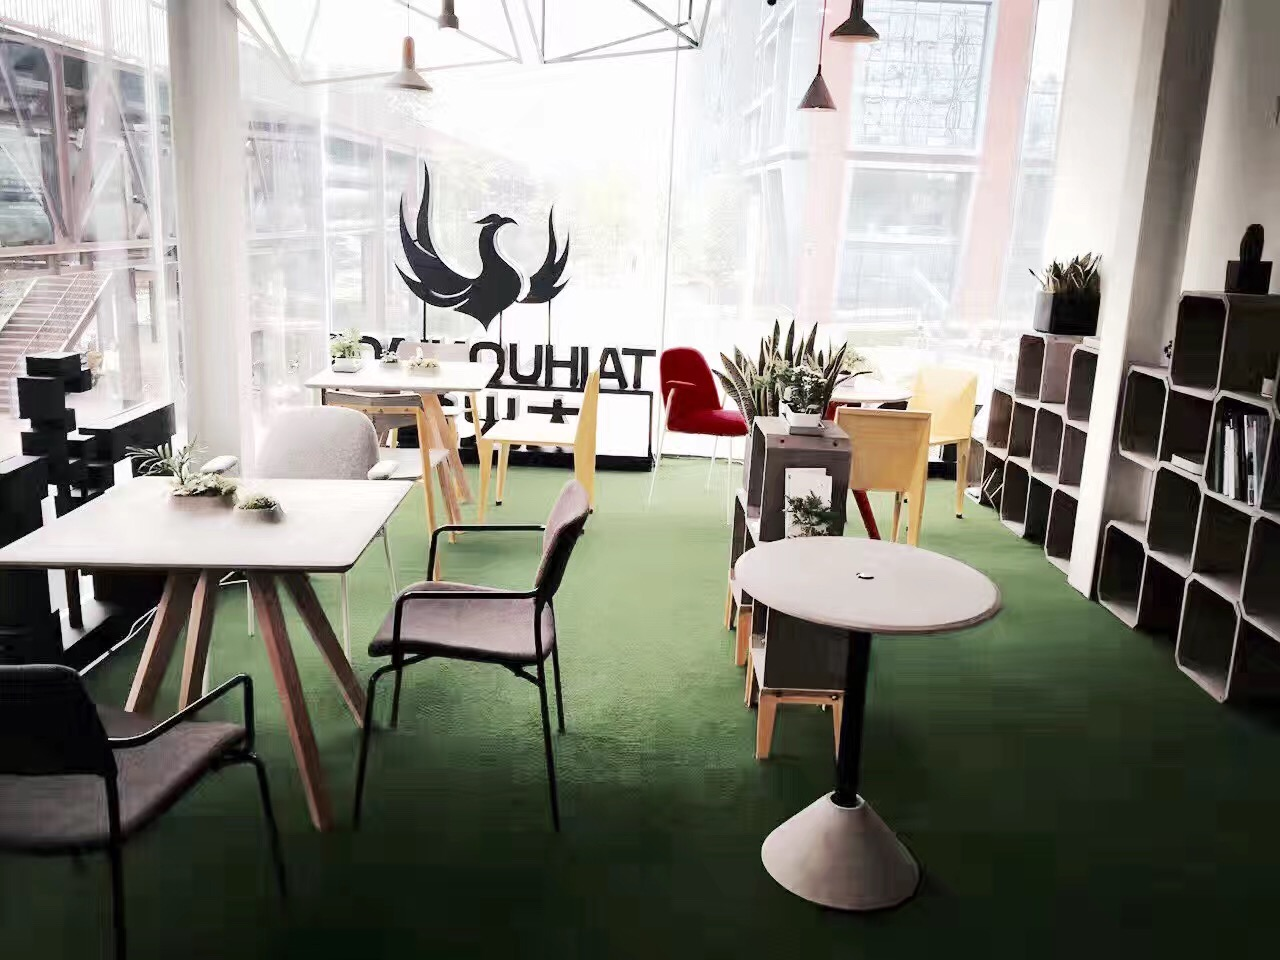 北京太火鸟未来商店TAIHUONIAO future shop Beijing—Stilo chair复古椅+Bend chair折纸椅(1)